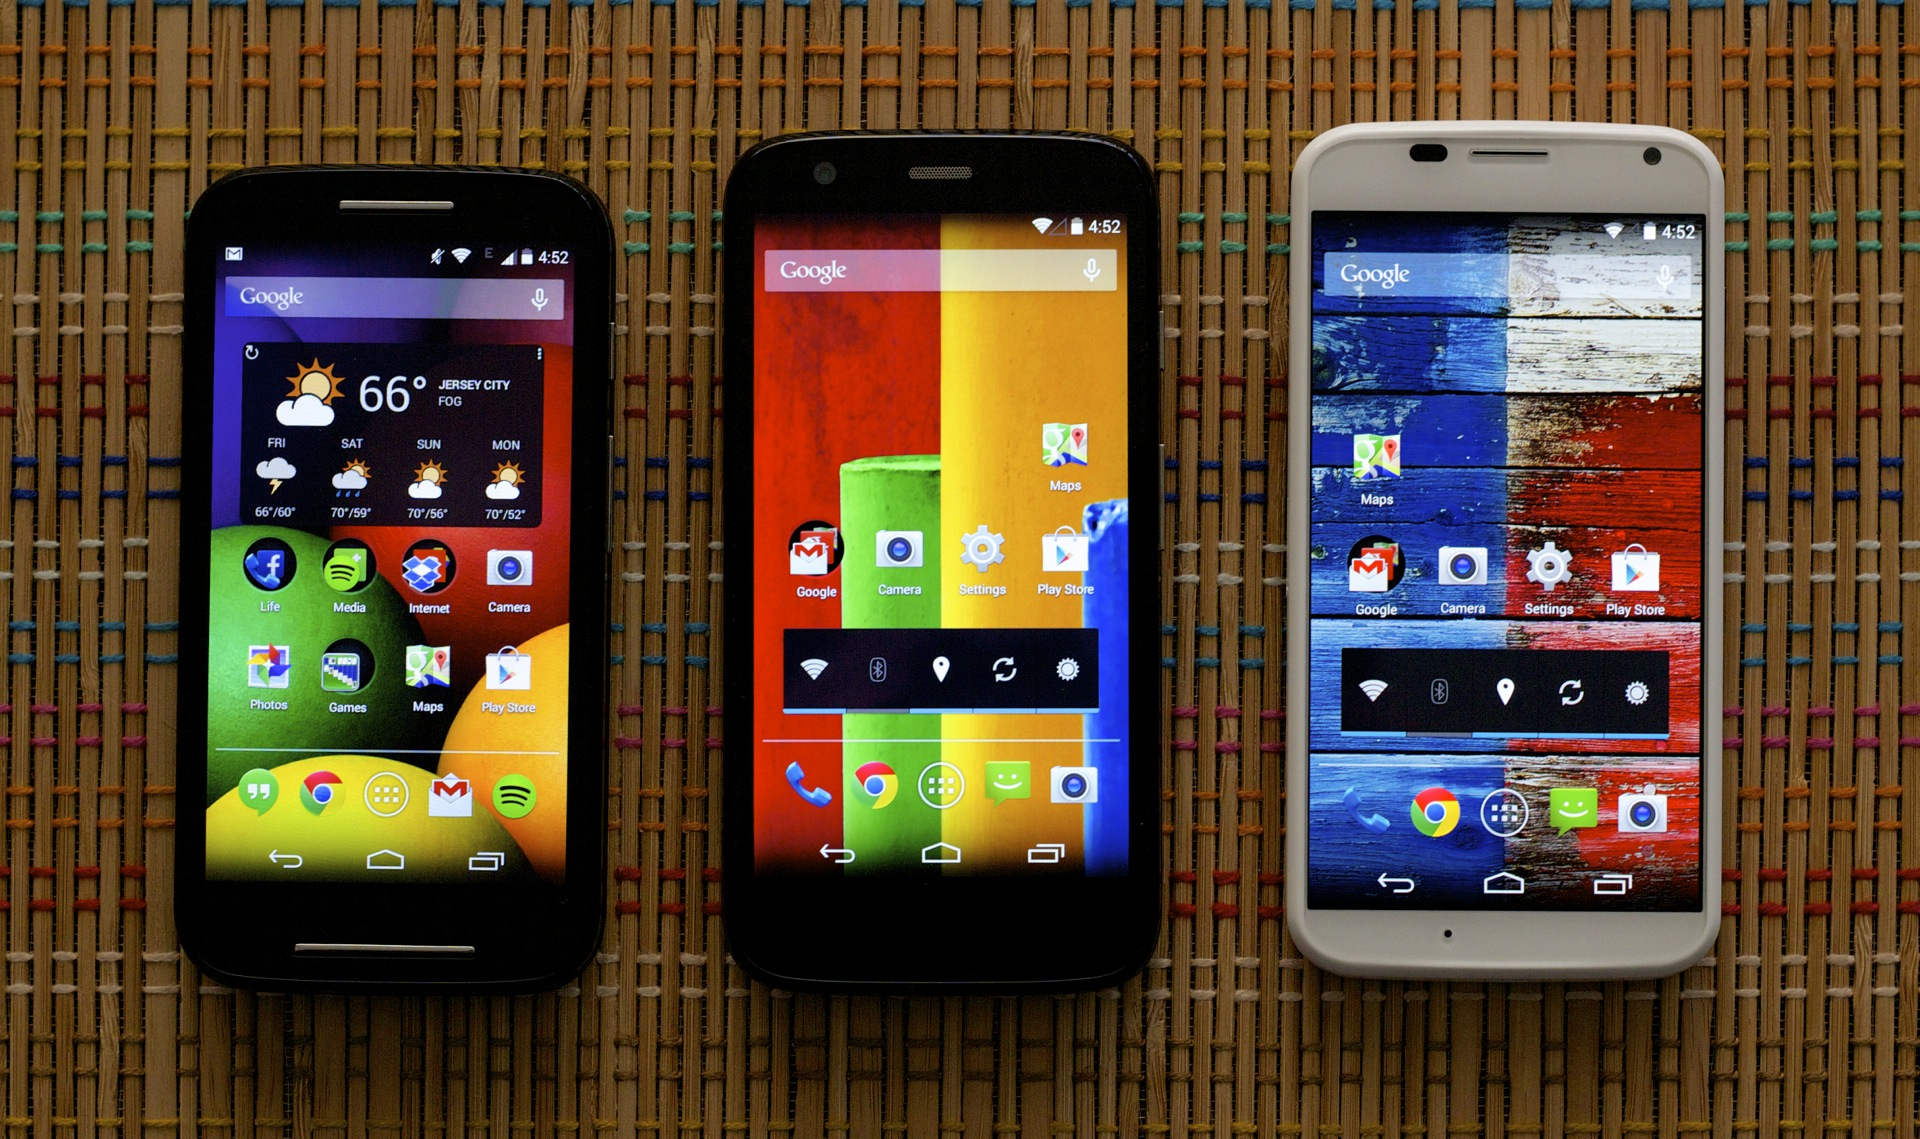 Android 4.4.4 KitKat Roll-Out Begins for Moto E, Moto G and Moto X Users in India